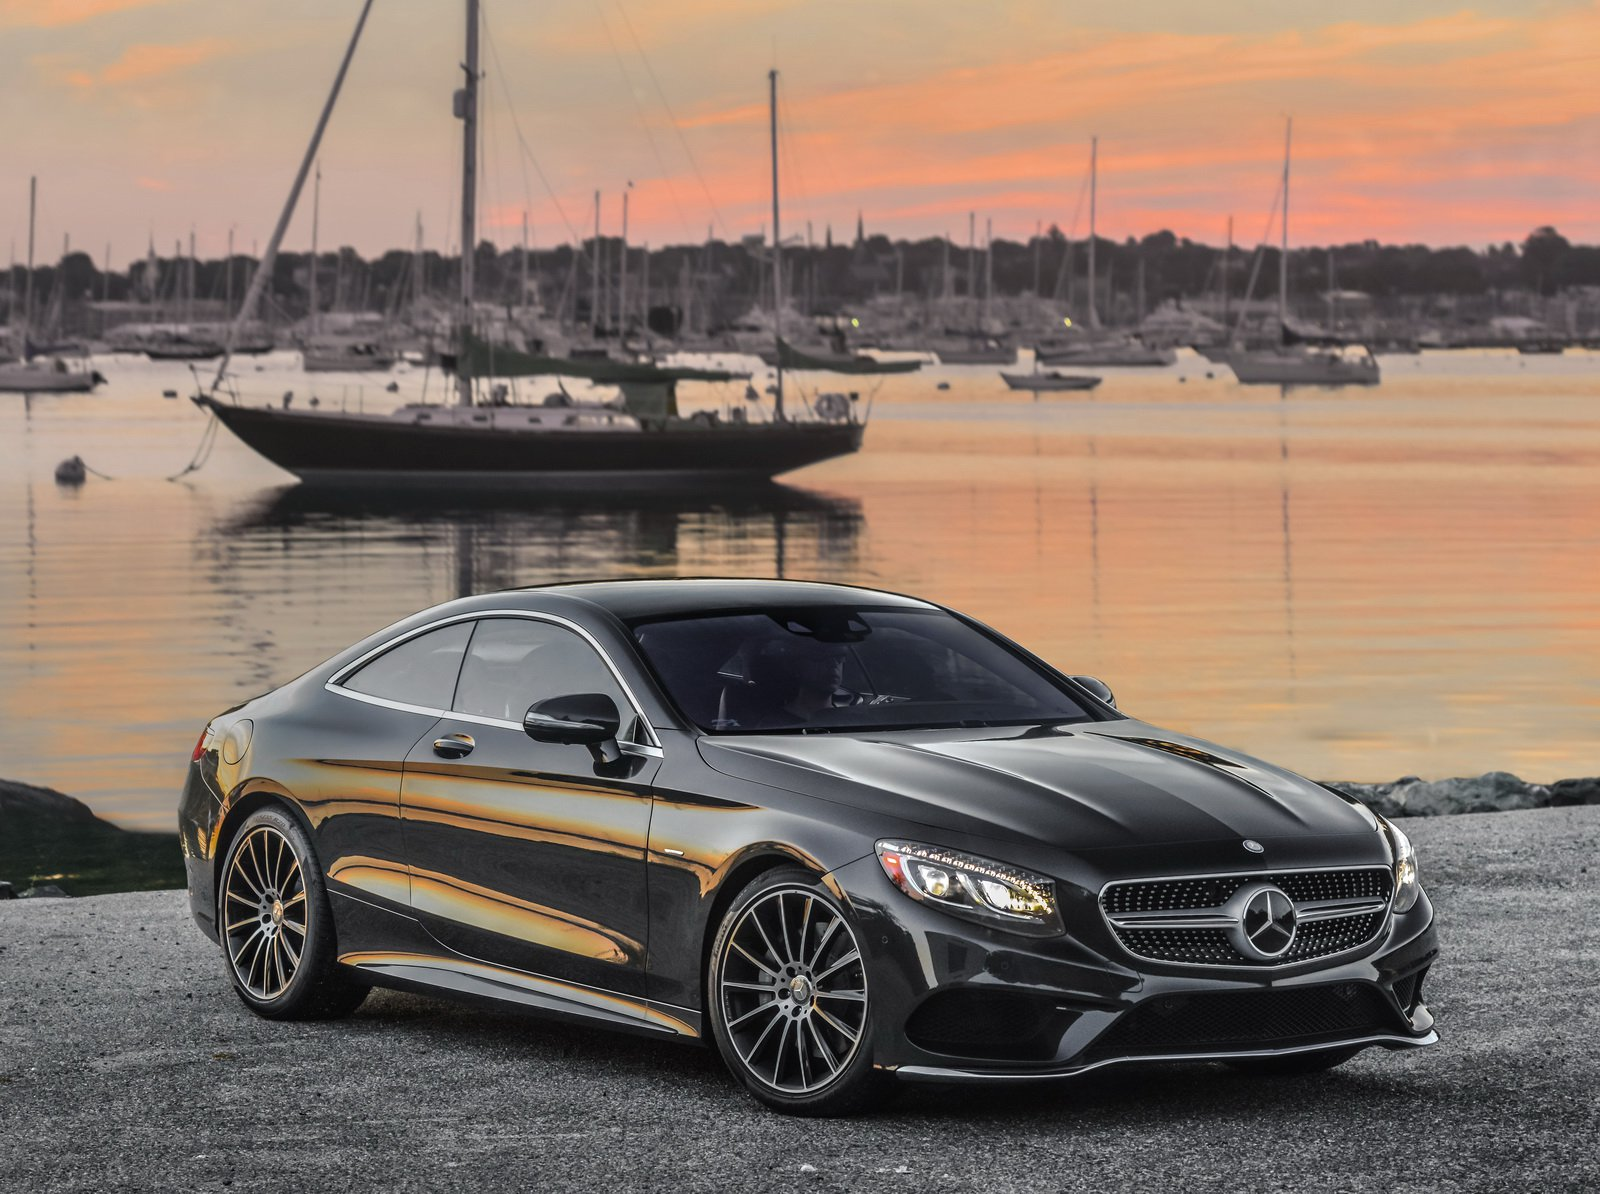 mercedes Porsche is the likely answer for the mainstream supercar, ferrari comes to mind for exotics, and for everyday luxury, chances are you'll hear mercedes most of us lack the means to own one of.